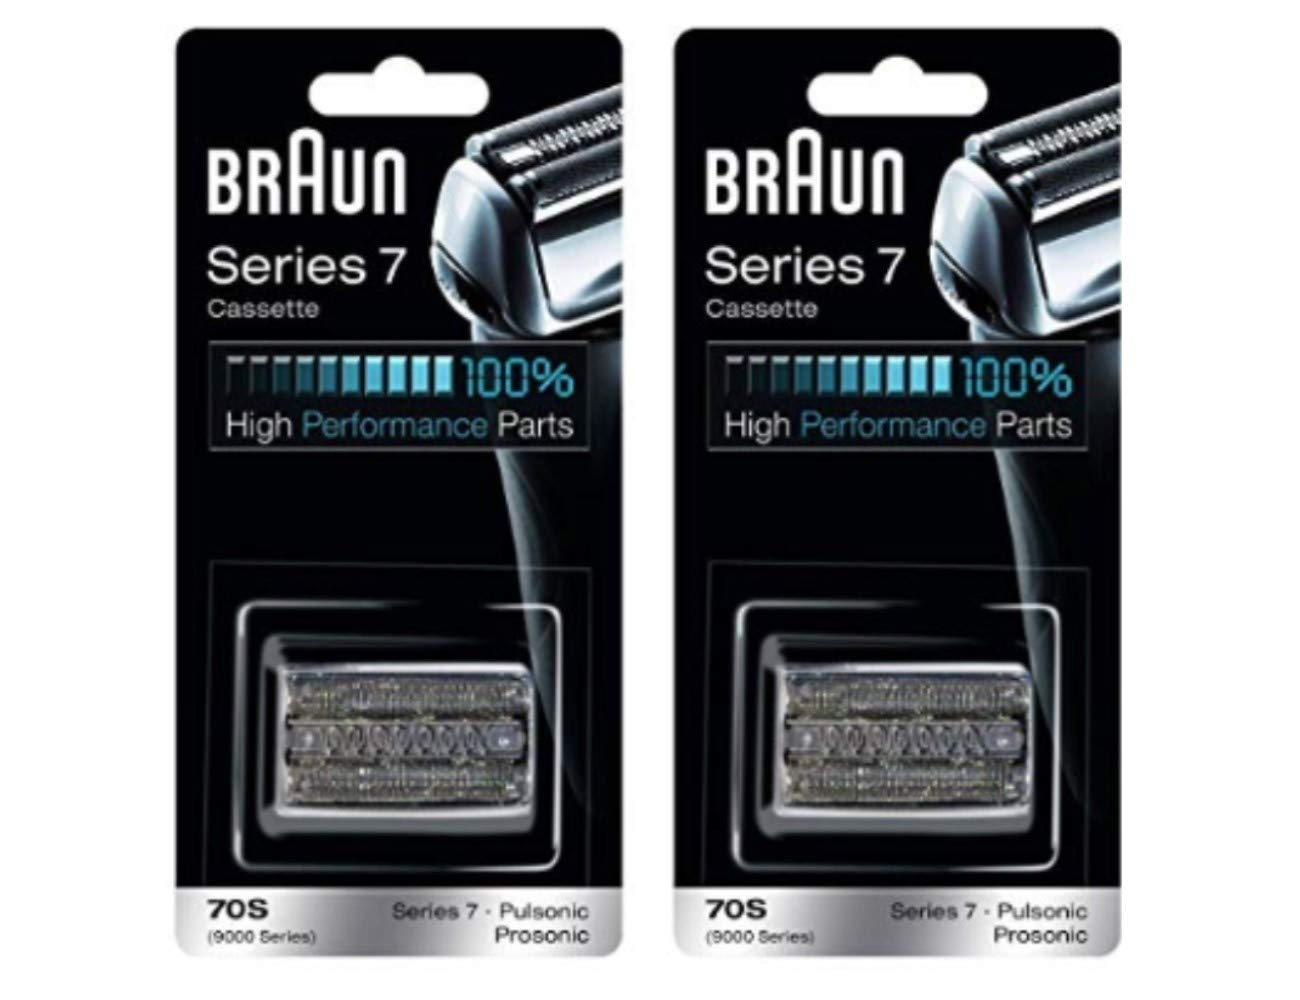 Braun Series 7 Combi 70S Cassette Replacement (Formerly 9000 Pulsonic)-2 Pack (2 Refills)